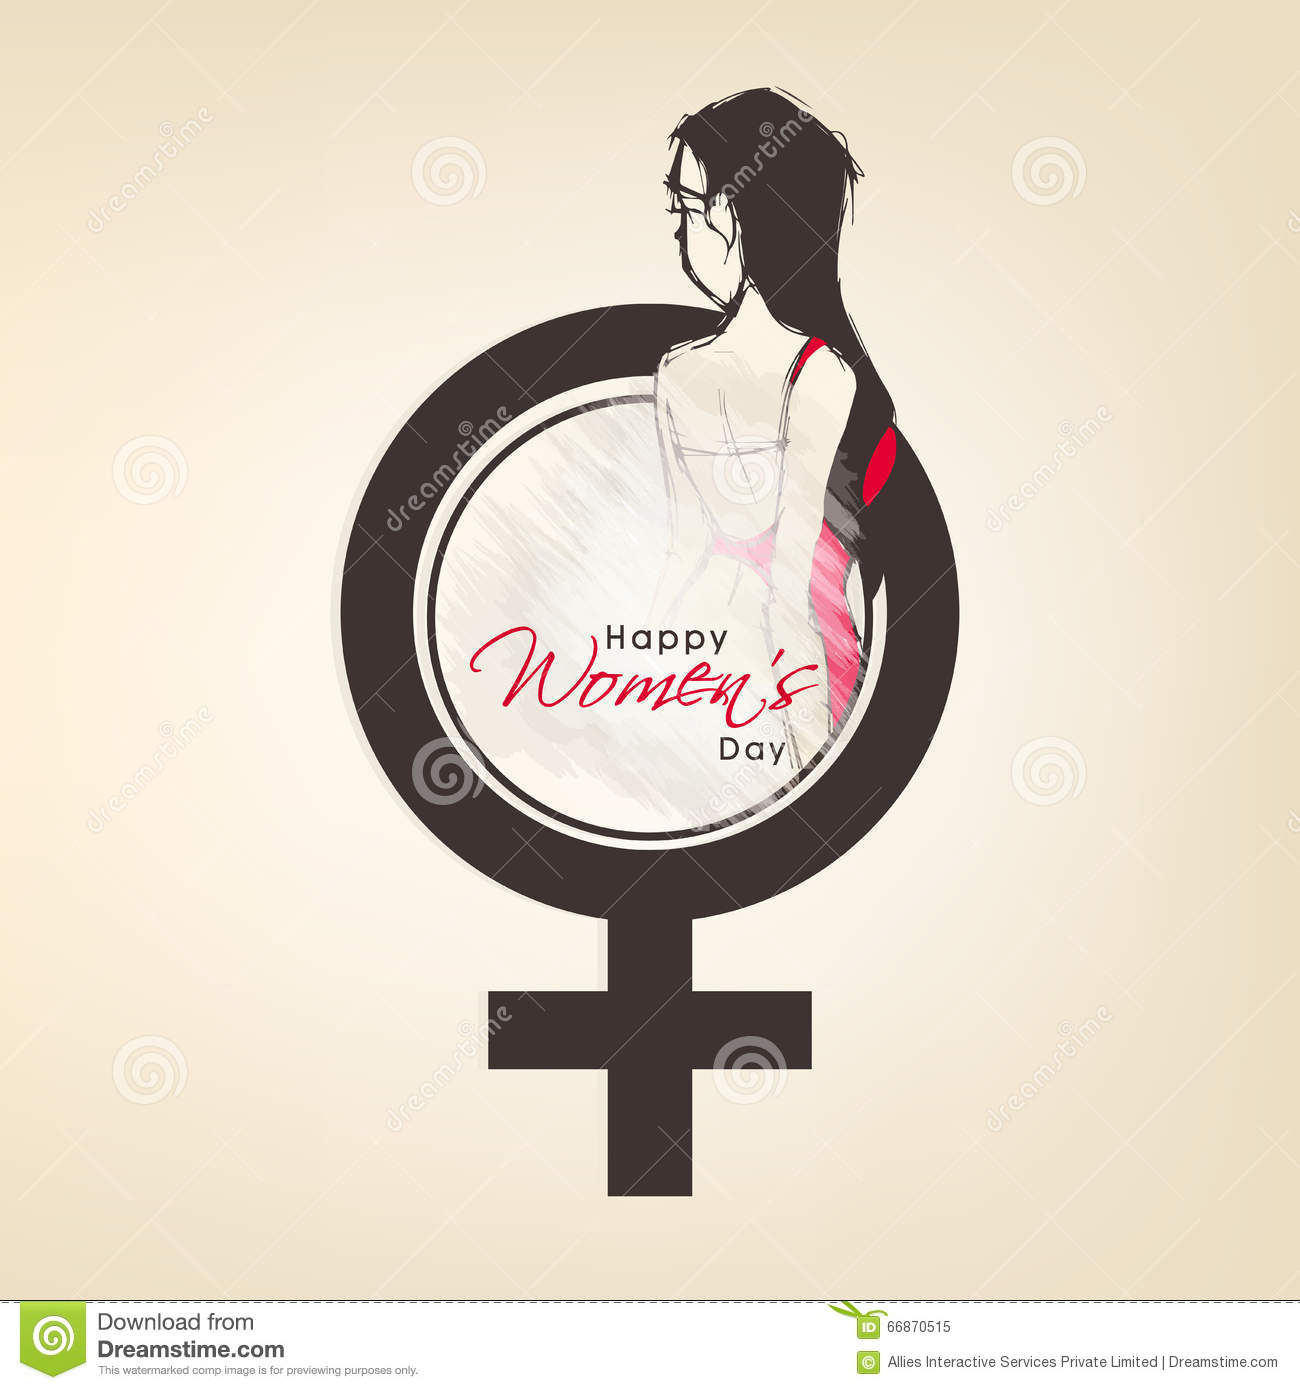 Female Symbol With Girl For Womens Day Concept Stock Illustration